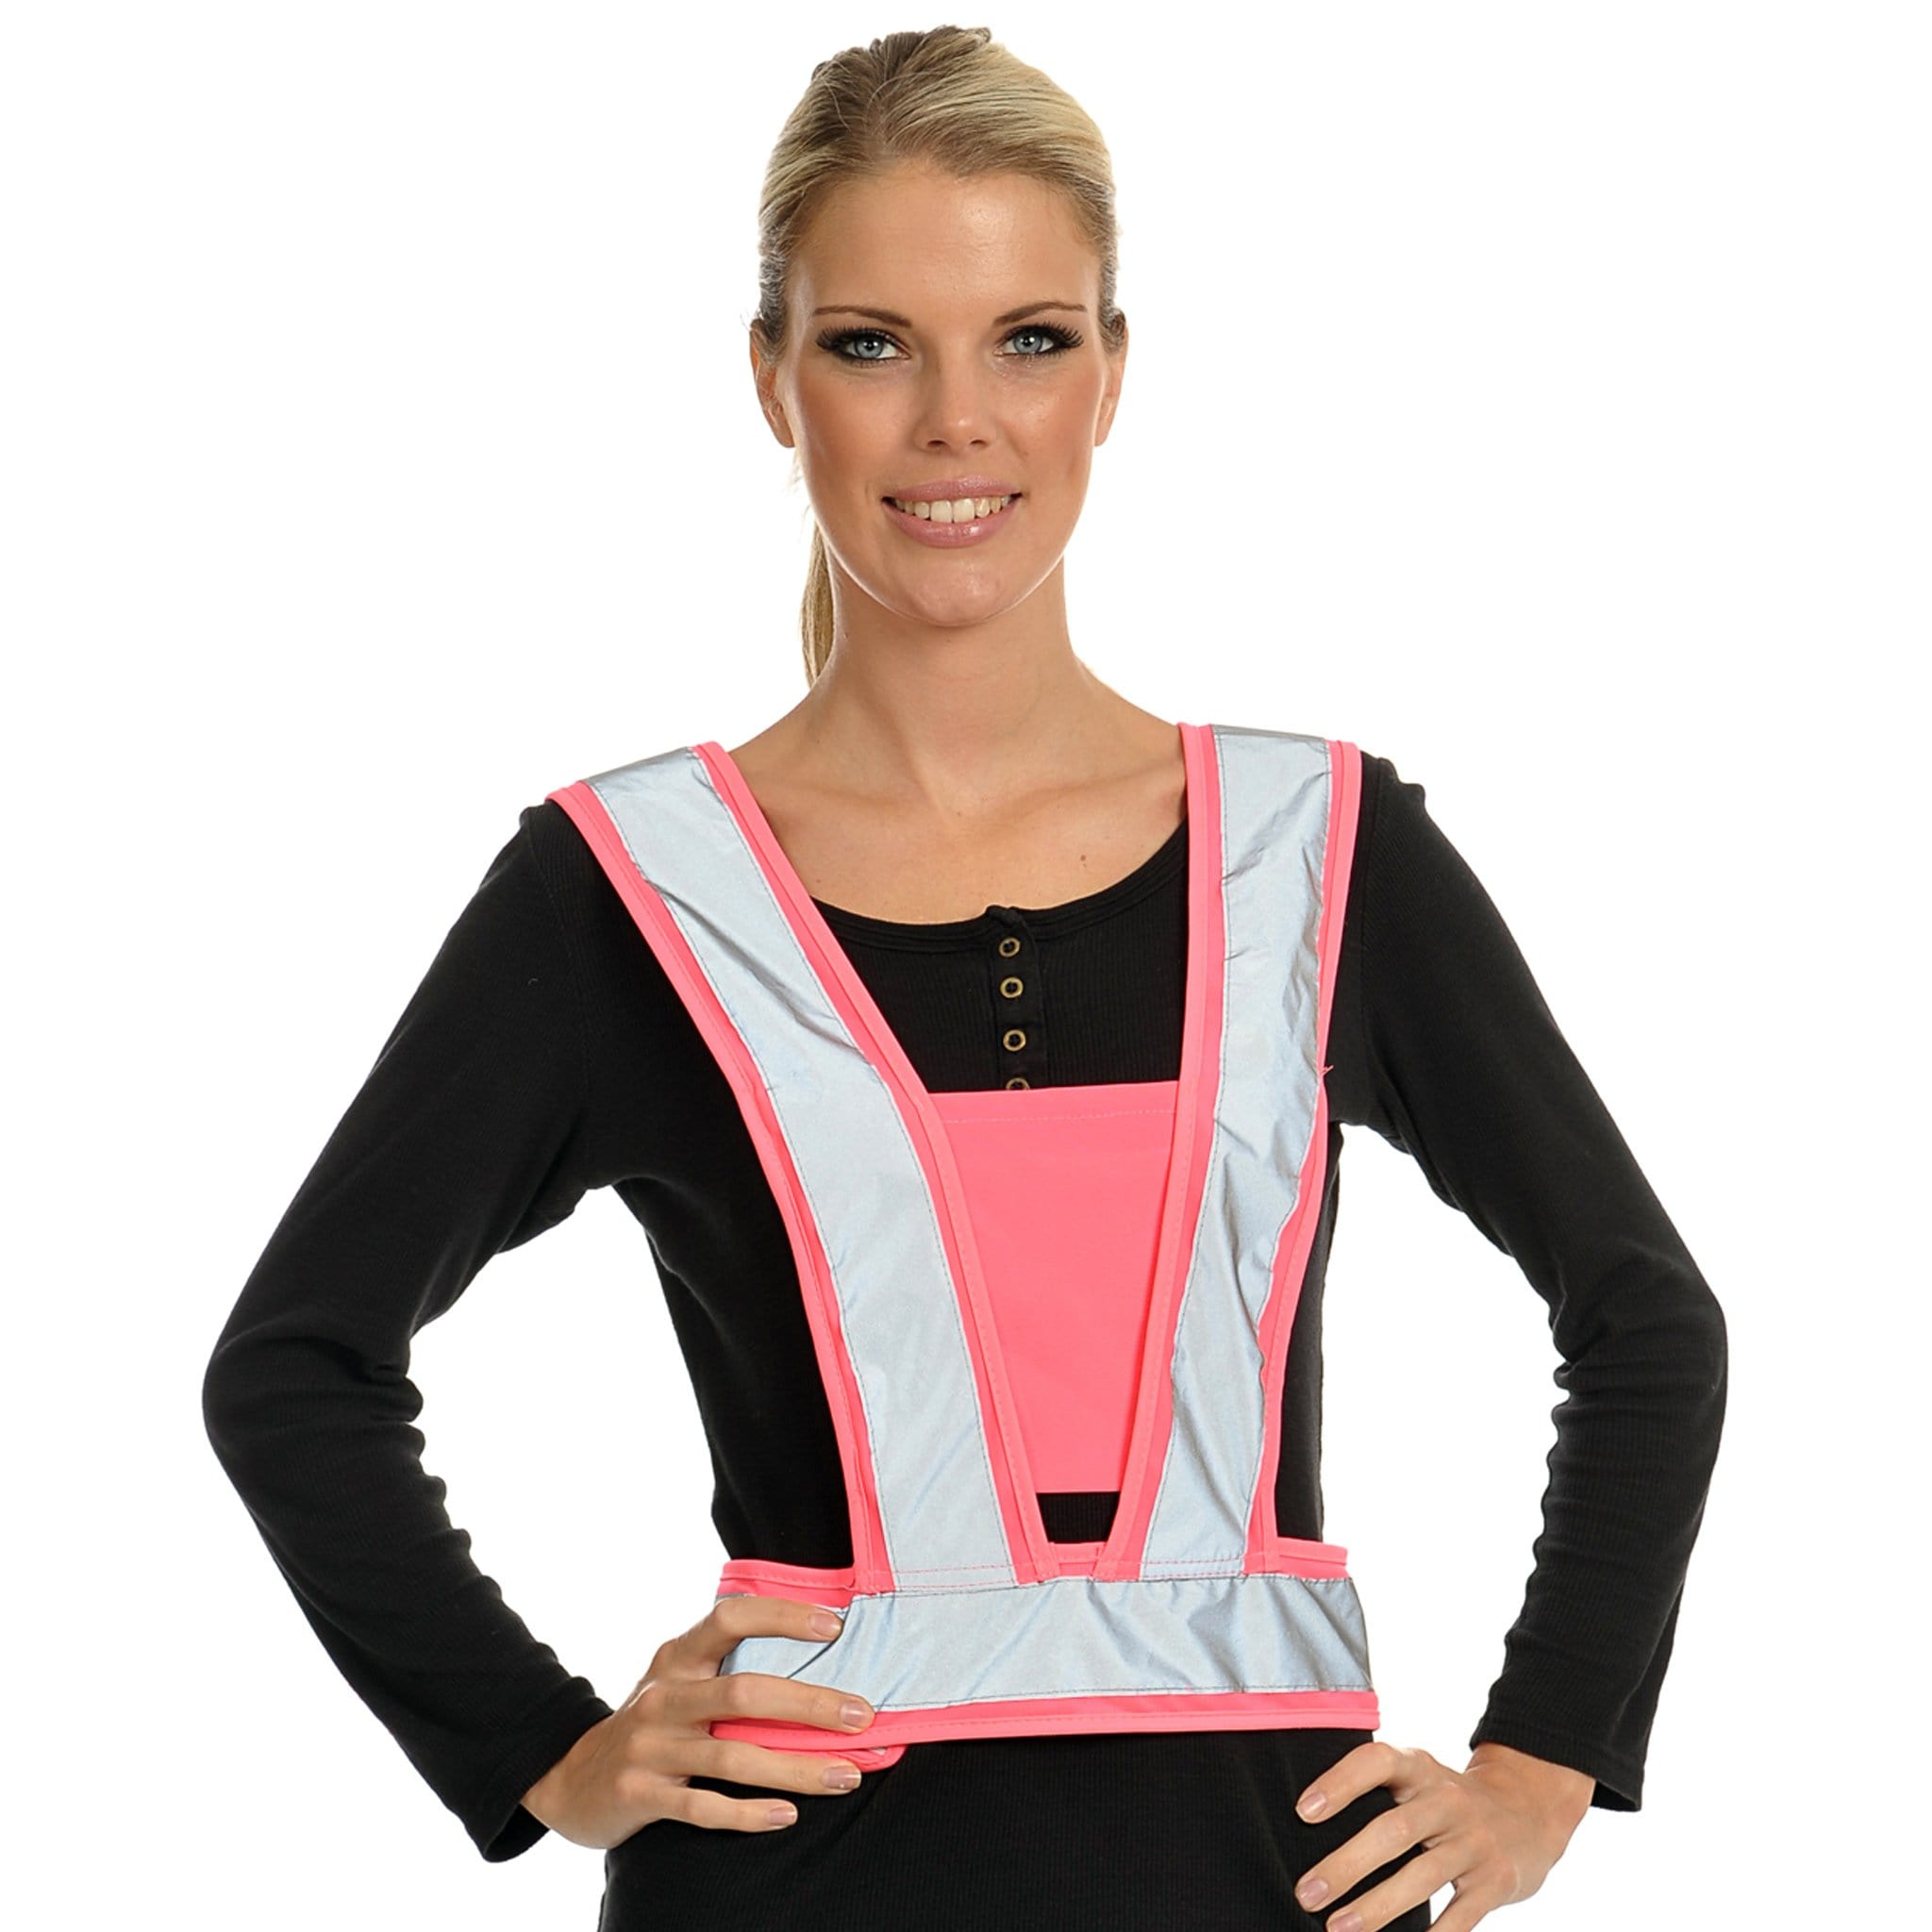 Equisafety Lightweight Body Harness Pink on Model 614292